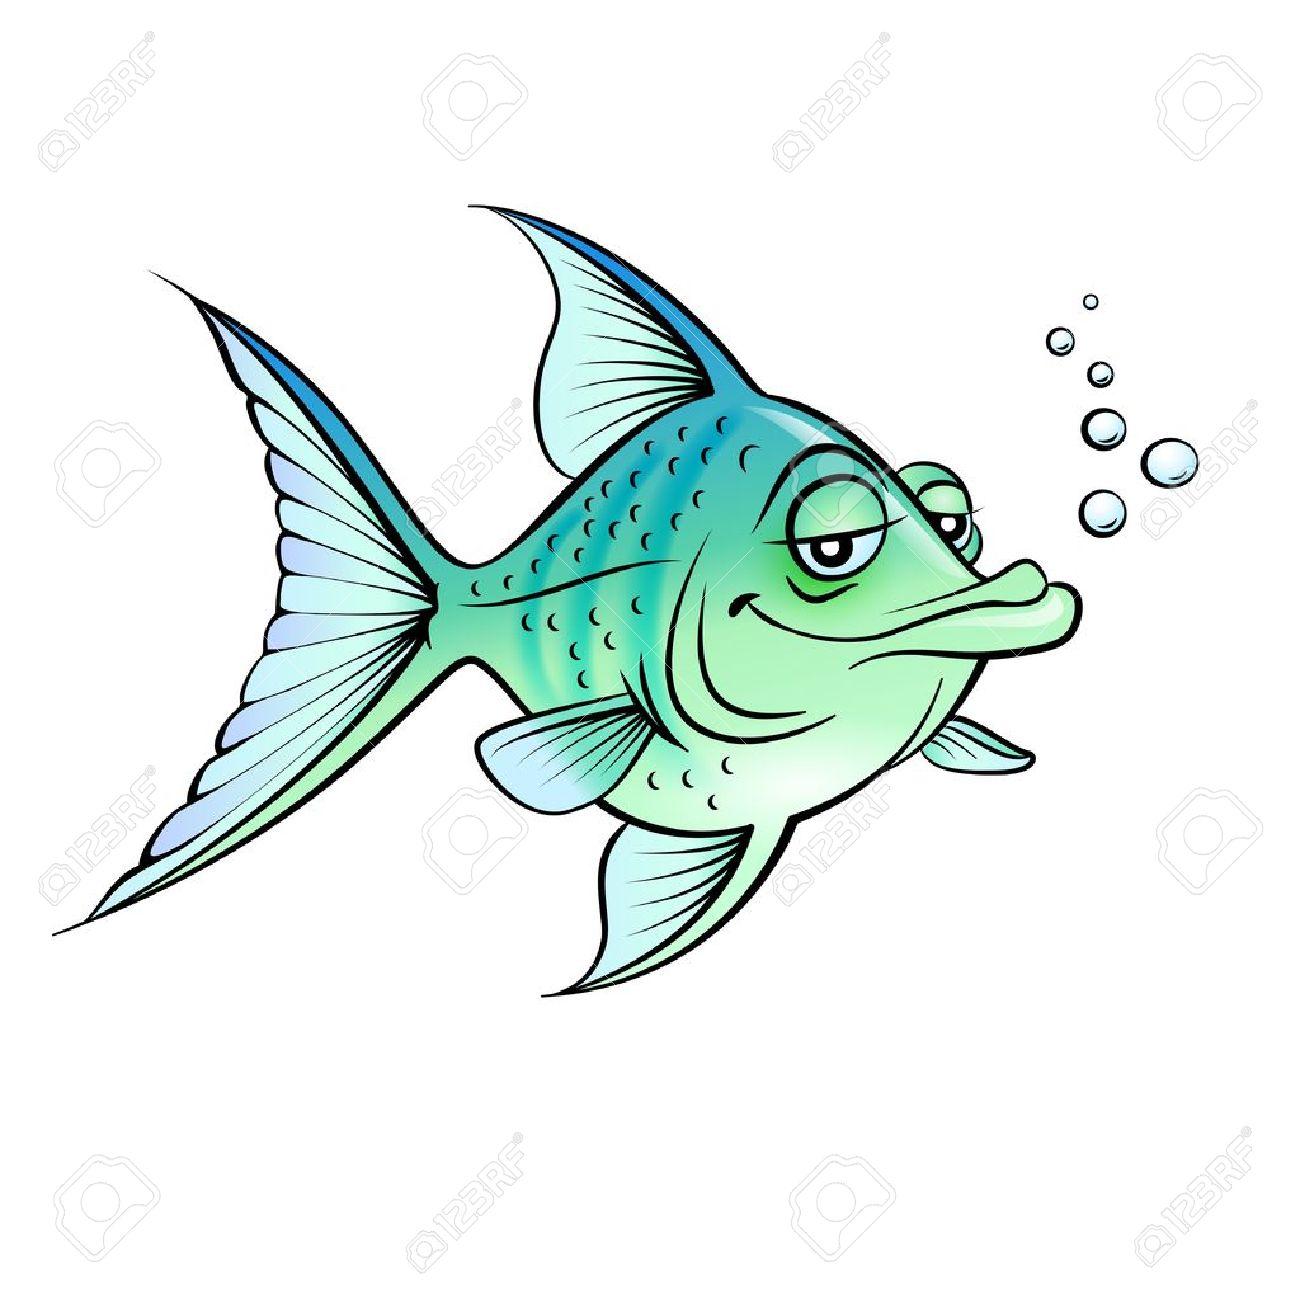 Green cartoon fish.  Illustration for design on white background Stock Vector - 14562065